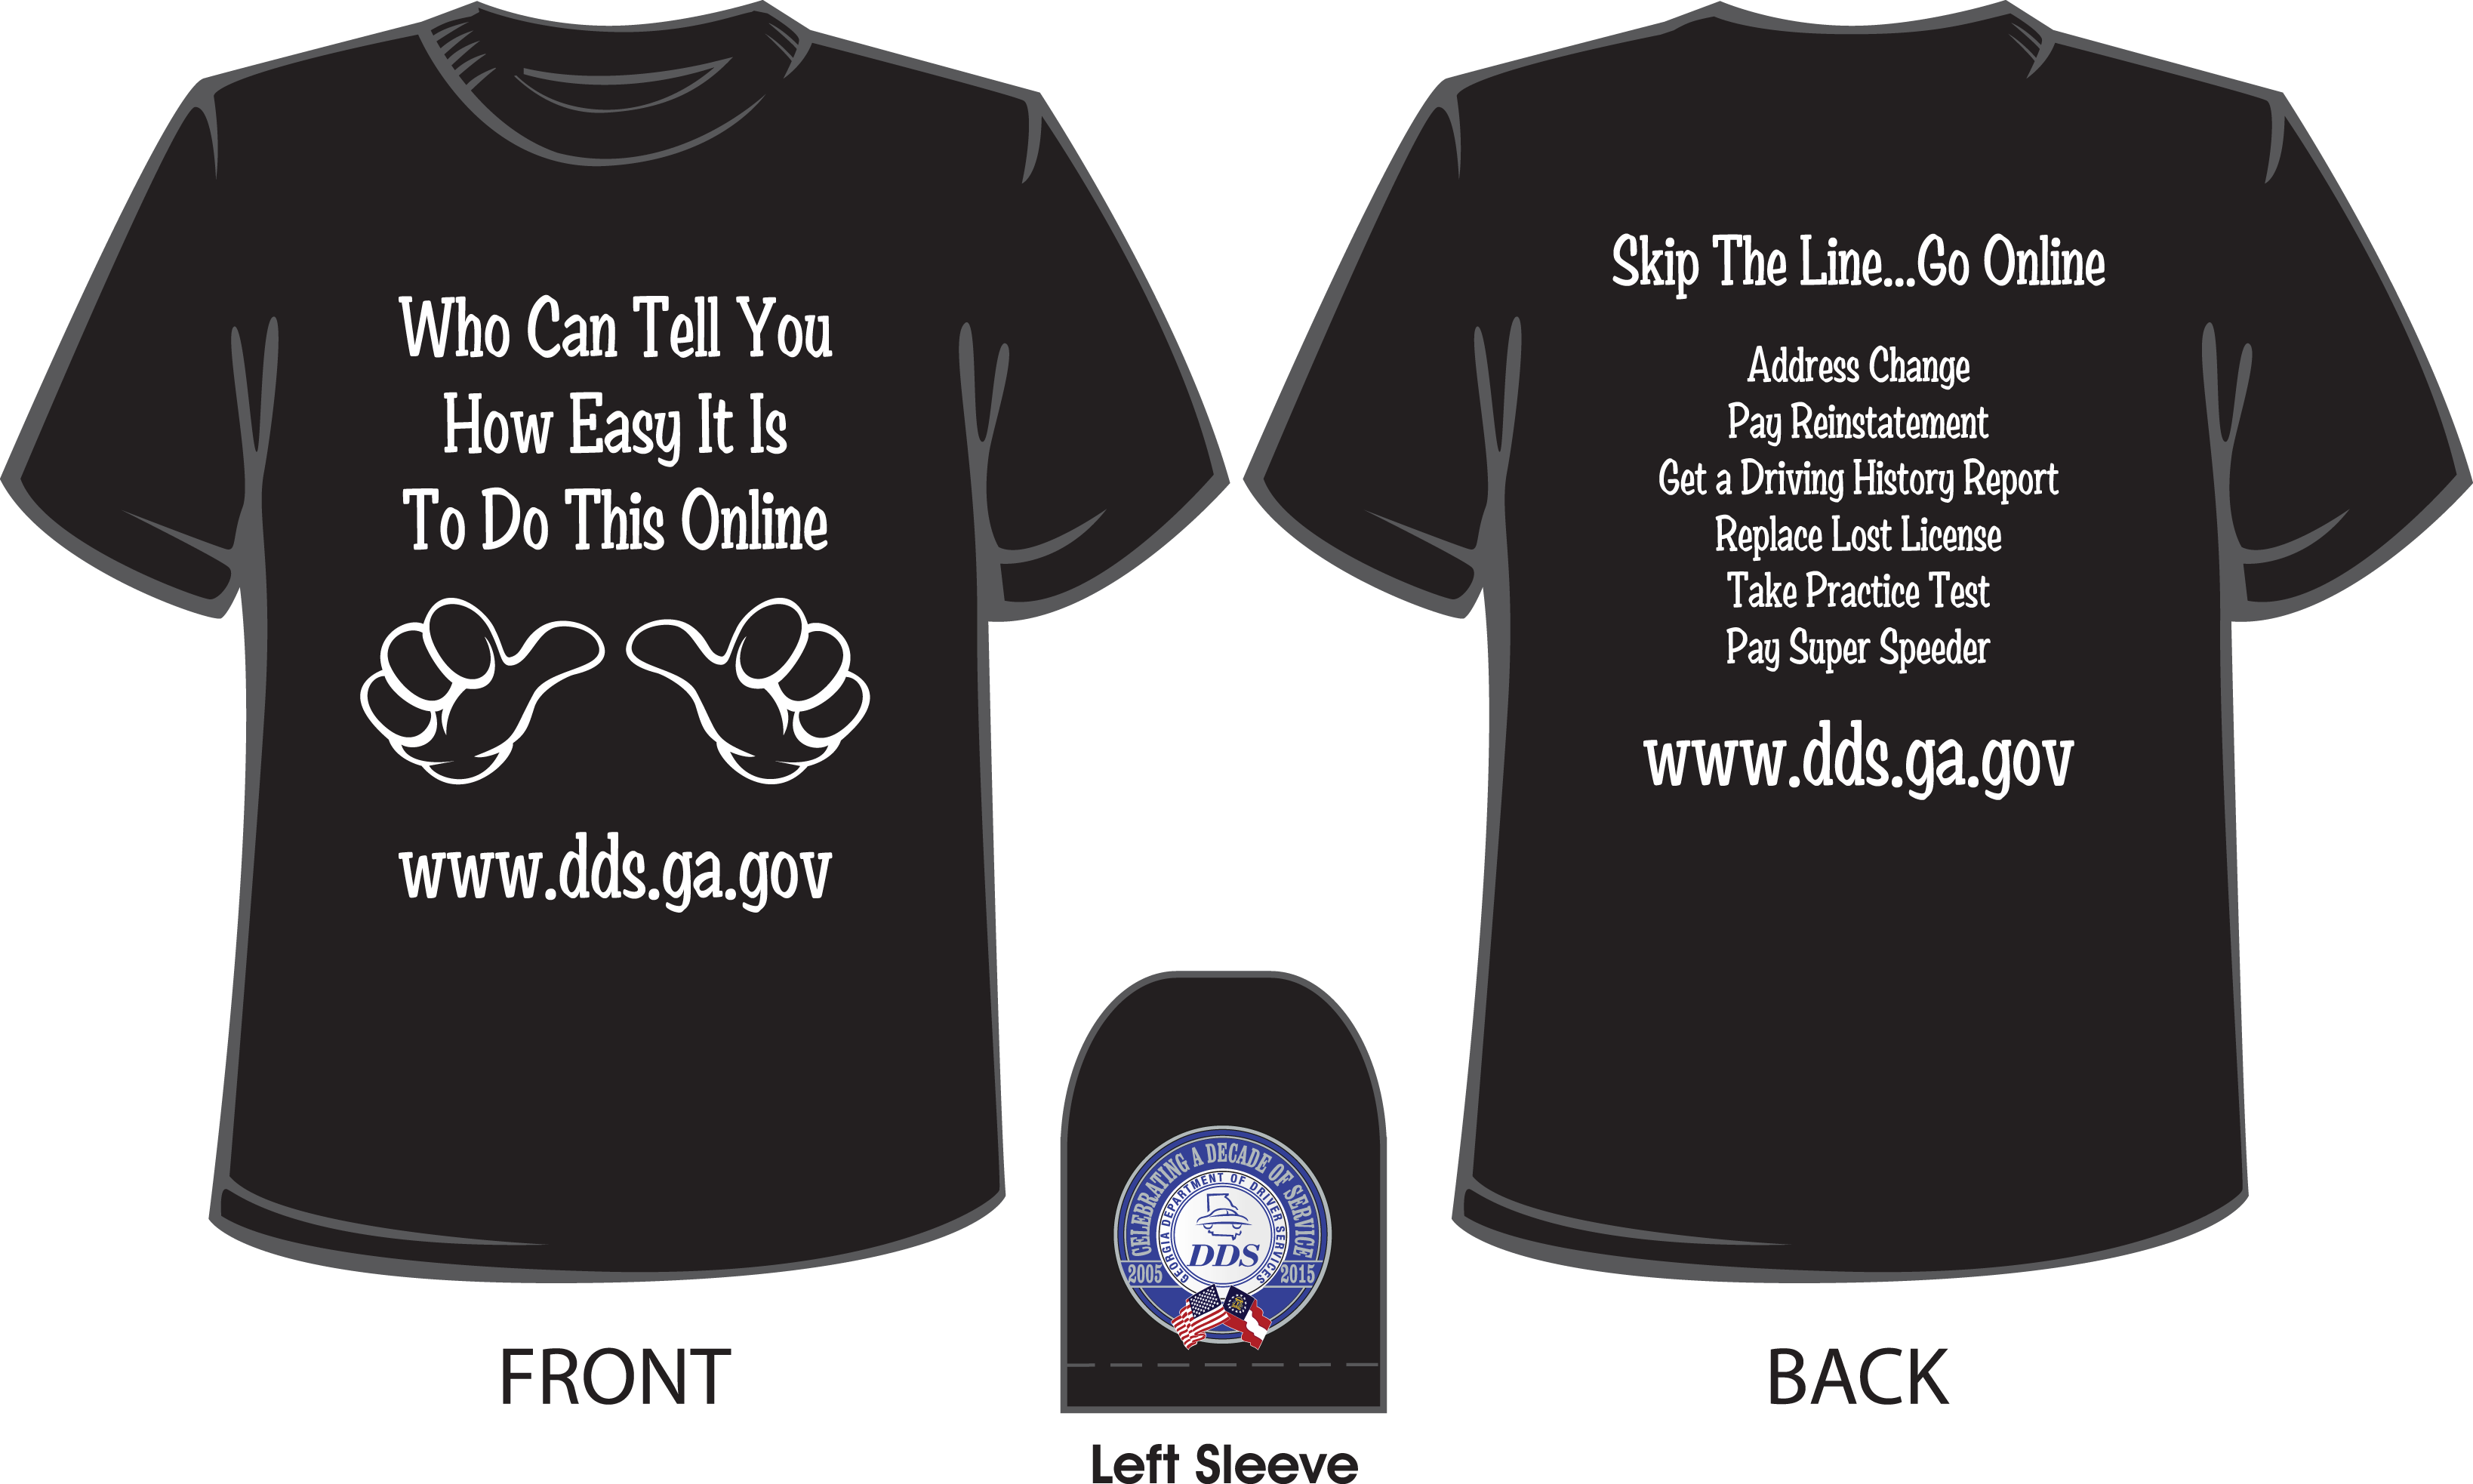 Georgia Dept of Driver Services T-shirt www dds ga gov | T